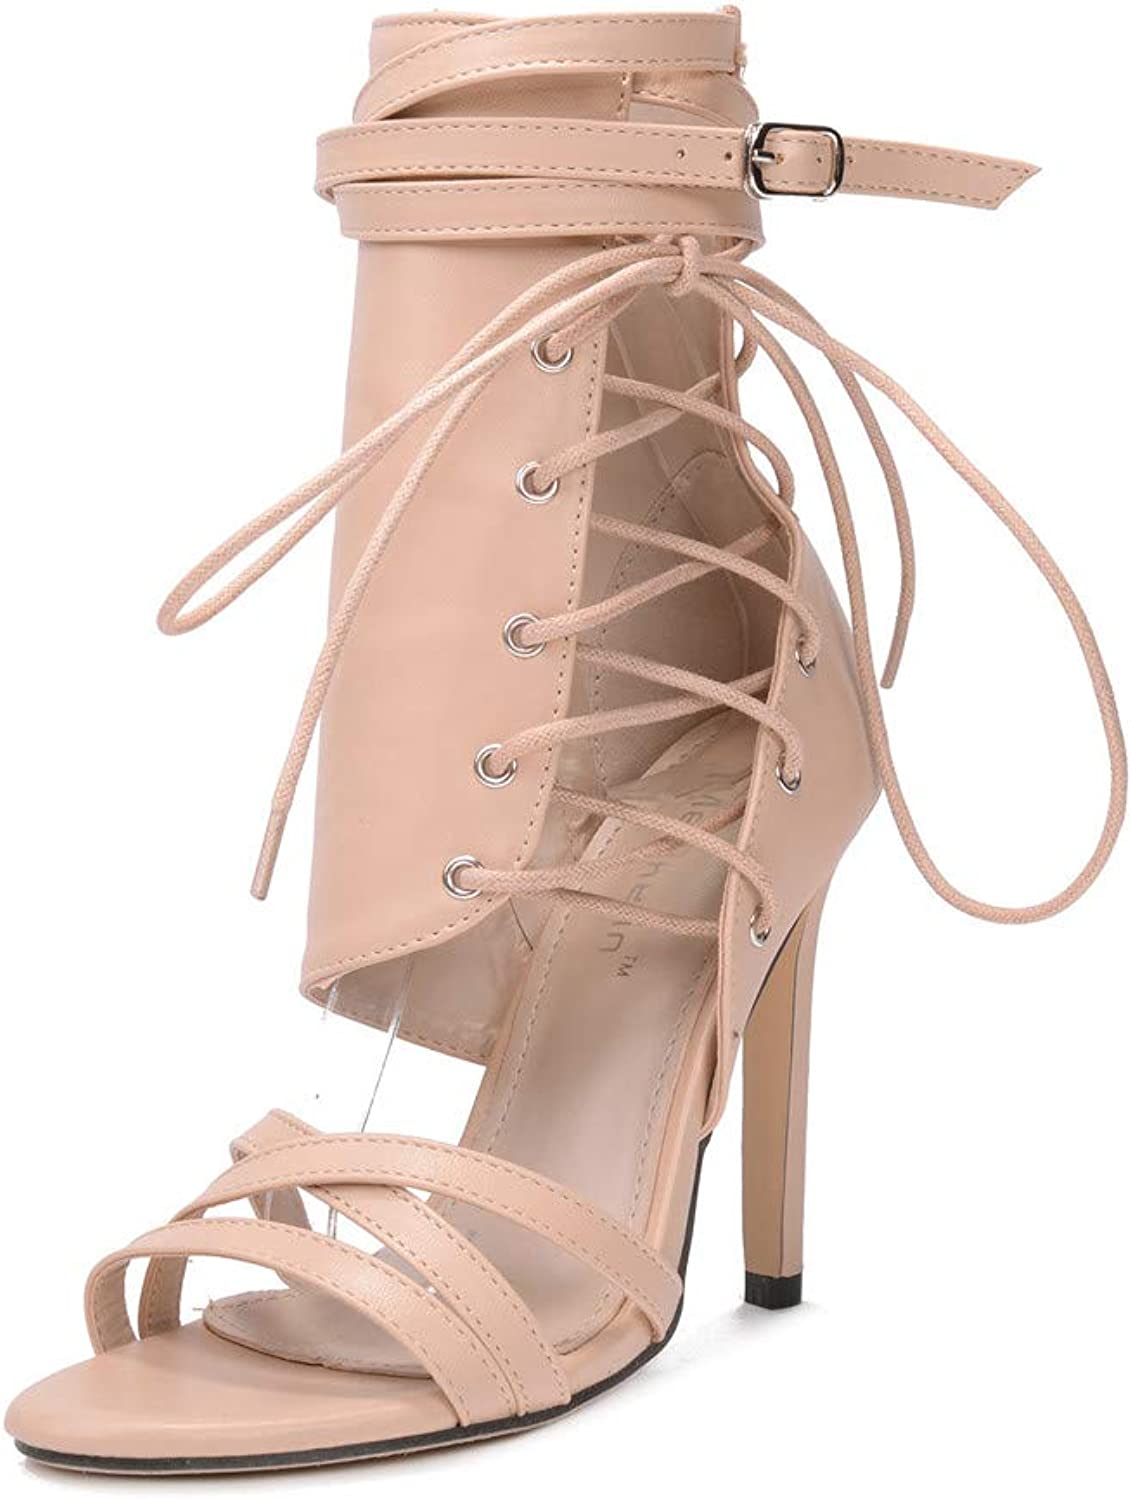 Womens High Heel, Strappy Stiletto Pumps Ankle Strap Open Toe Platform Party shoes Clubbing Heels,Beige,US5.5 EU36 UK3.5